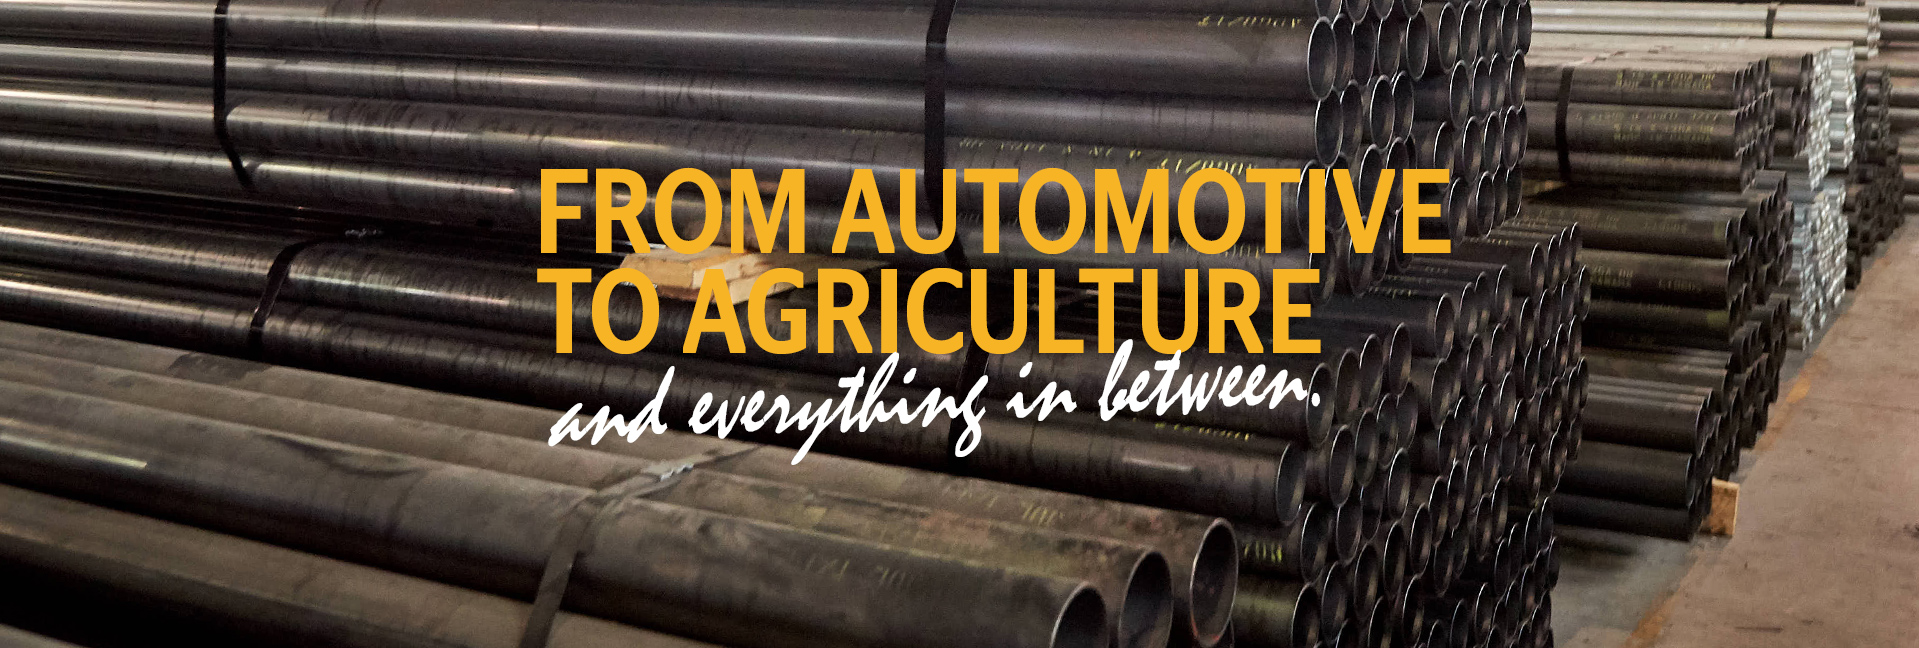 From automotive to agriculture and everything in between